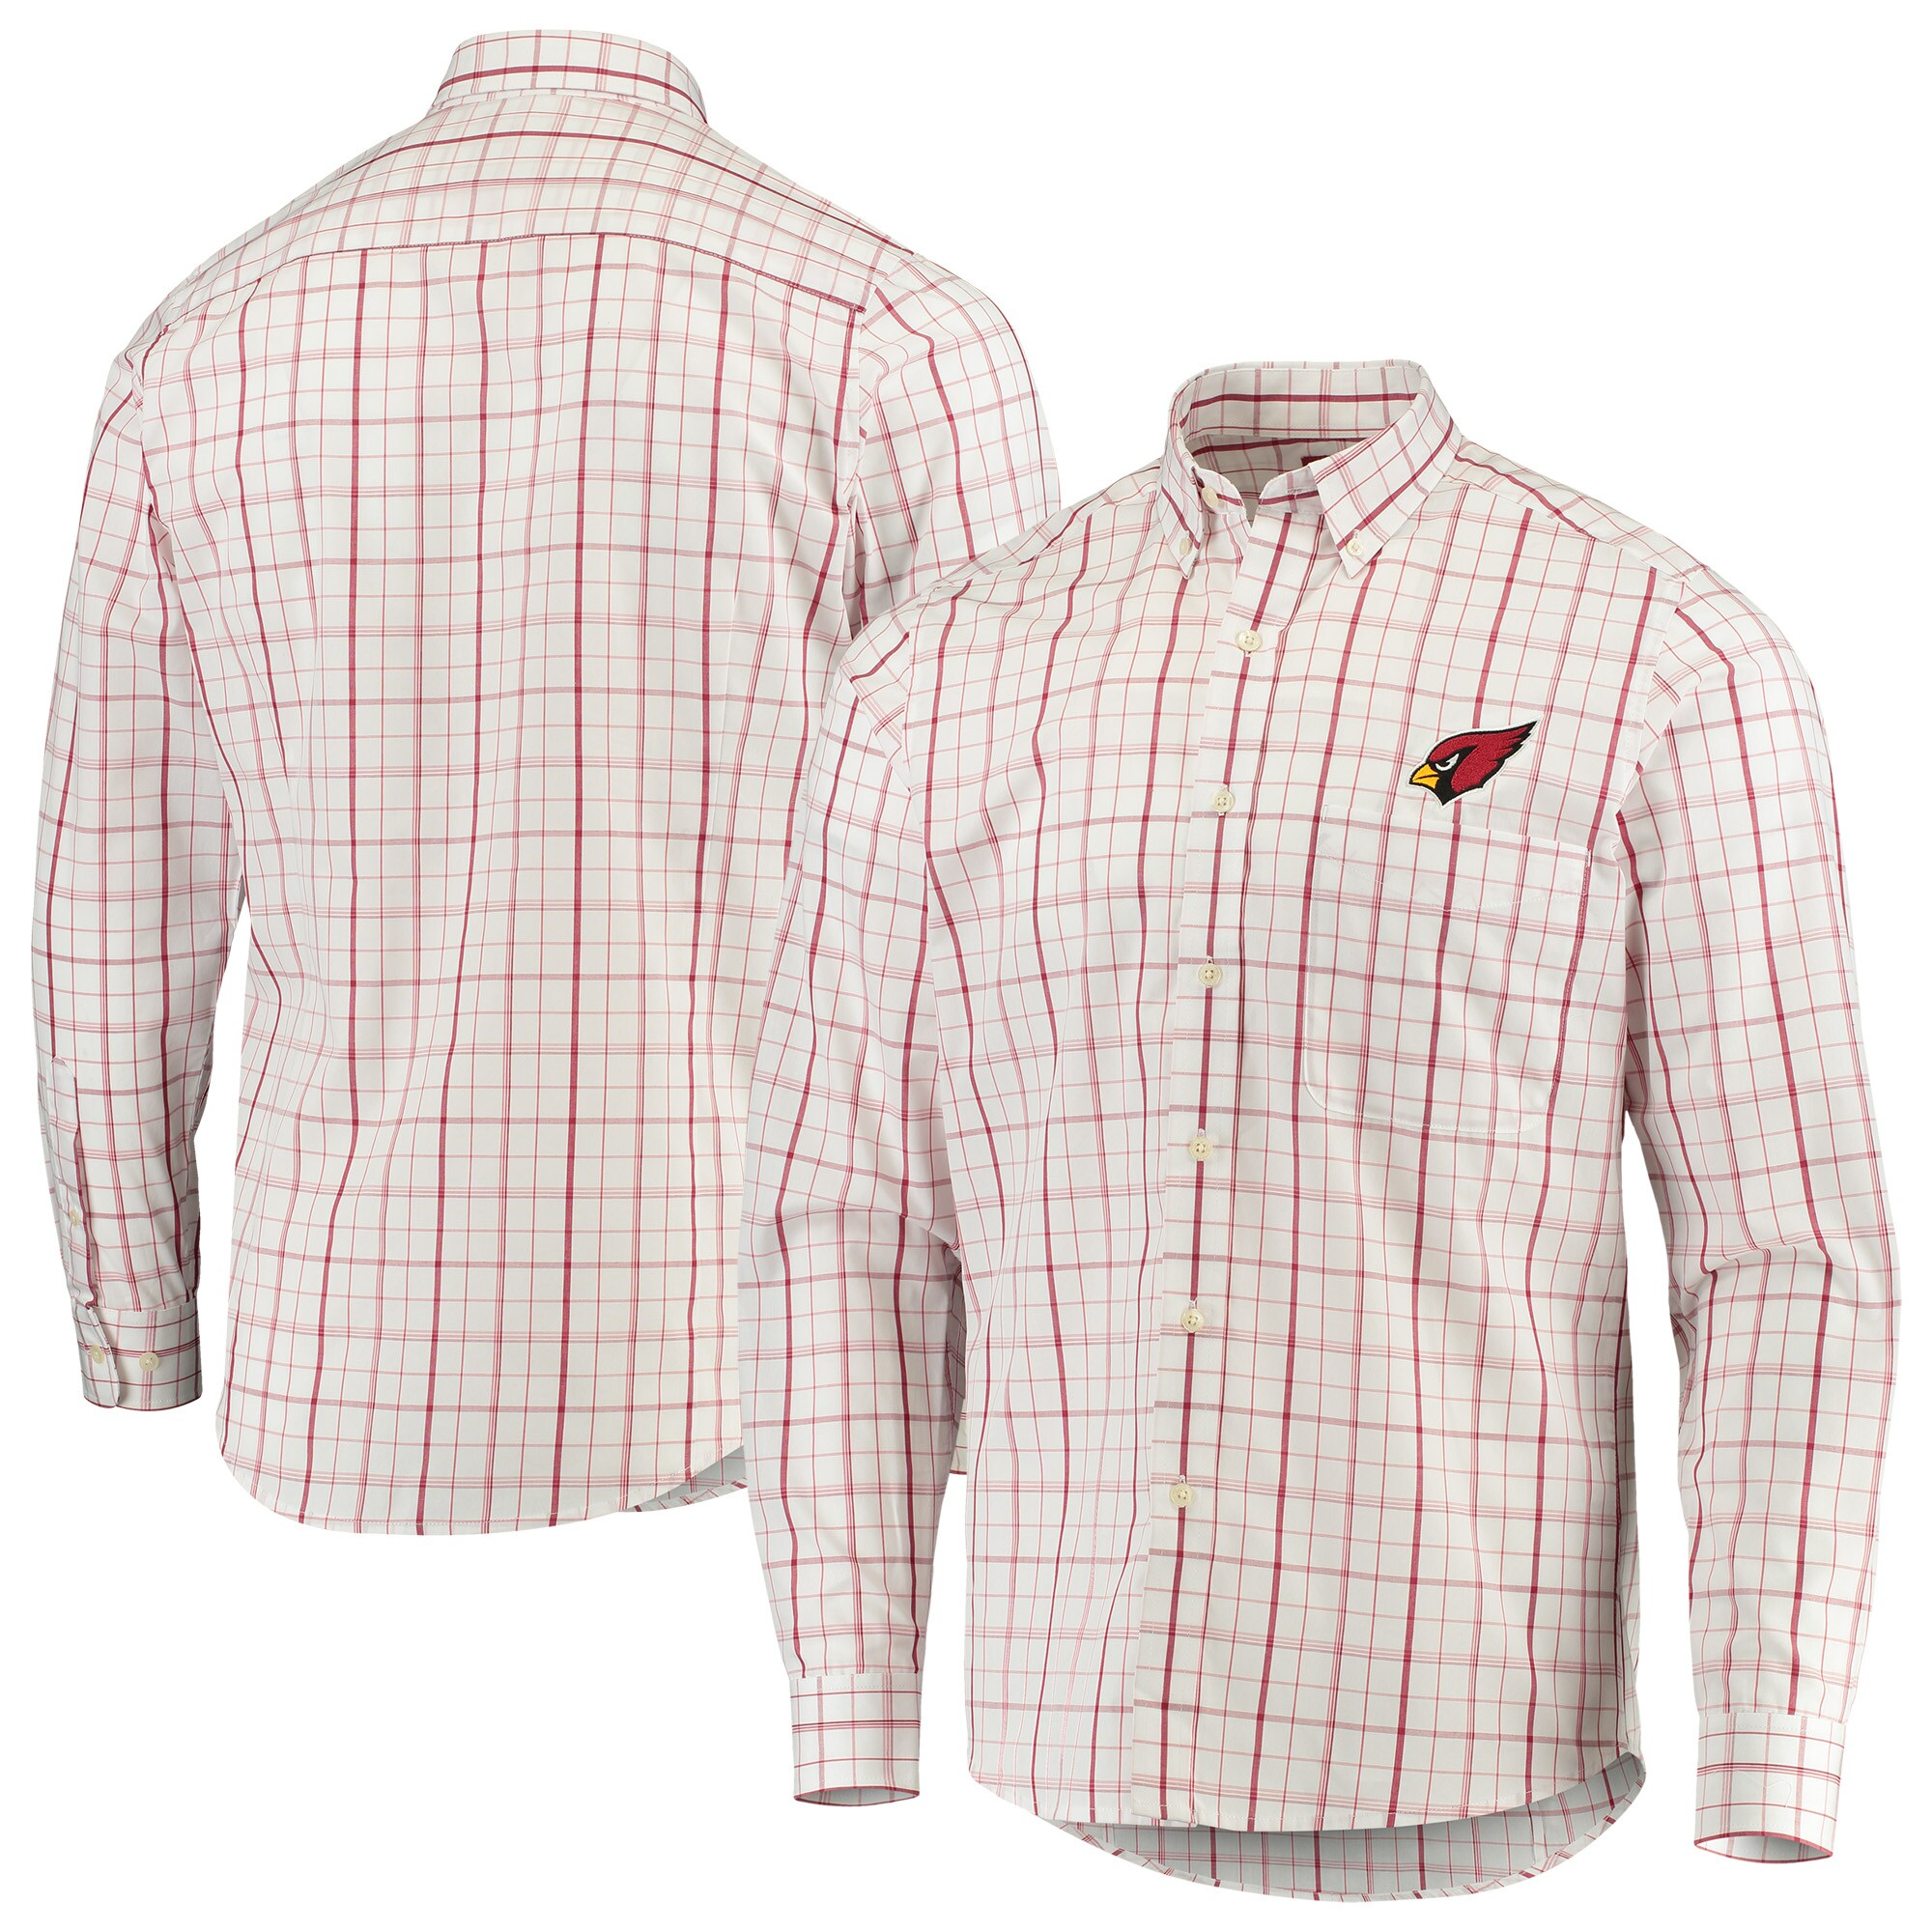 Arizona Cardinals Antigua Keen Long Sleeve Button-Down Shirt - White/Cardinal